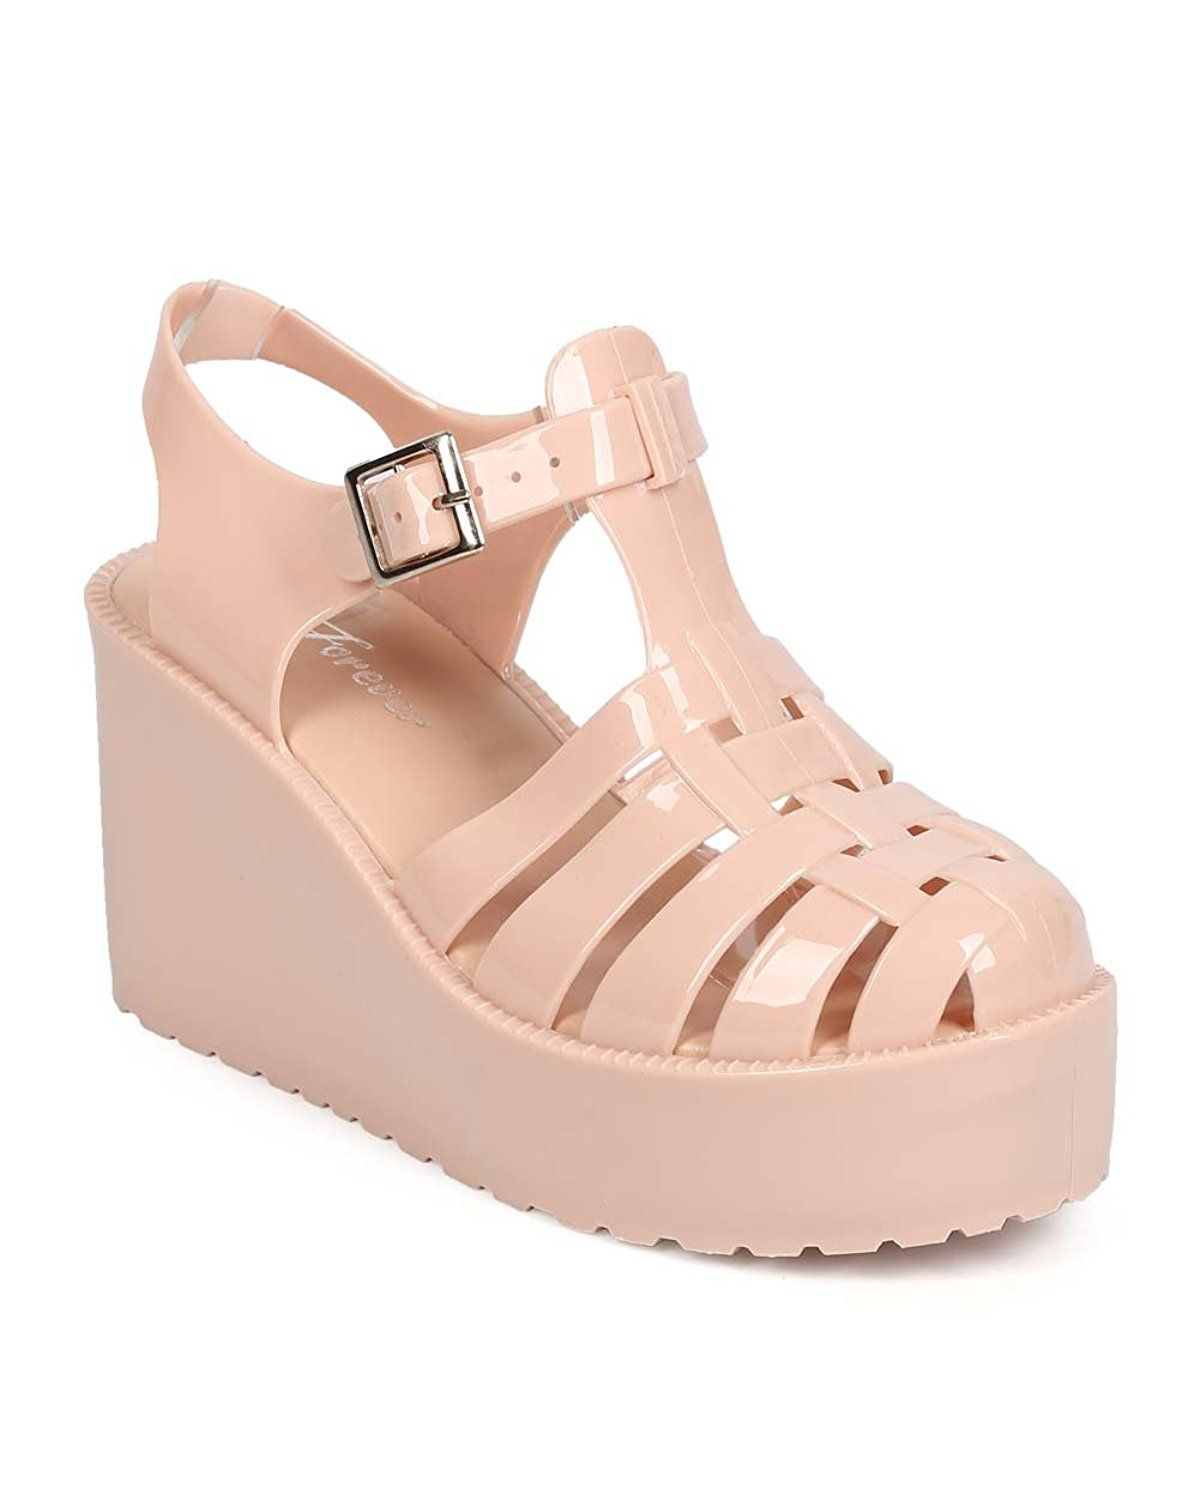 0c289af3ad561 Forever EA80 Women Jelly Round Toe Platform Fisherman Wedge Sandal     Don t  get left behind